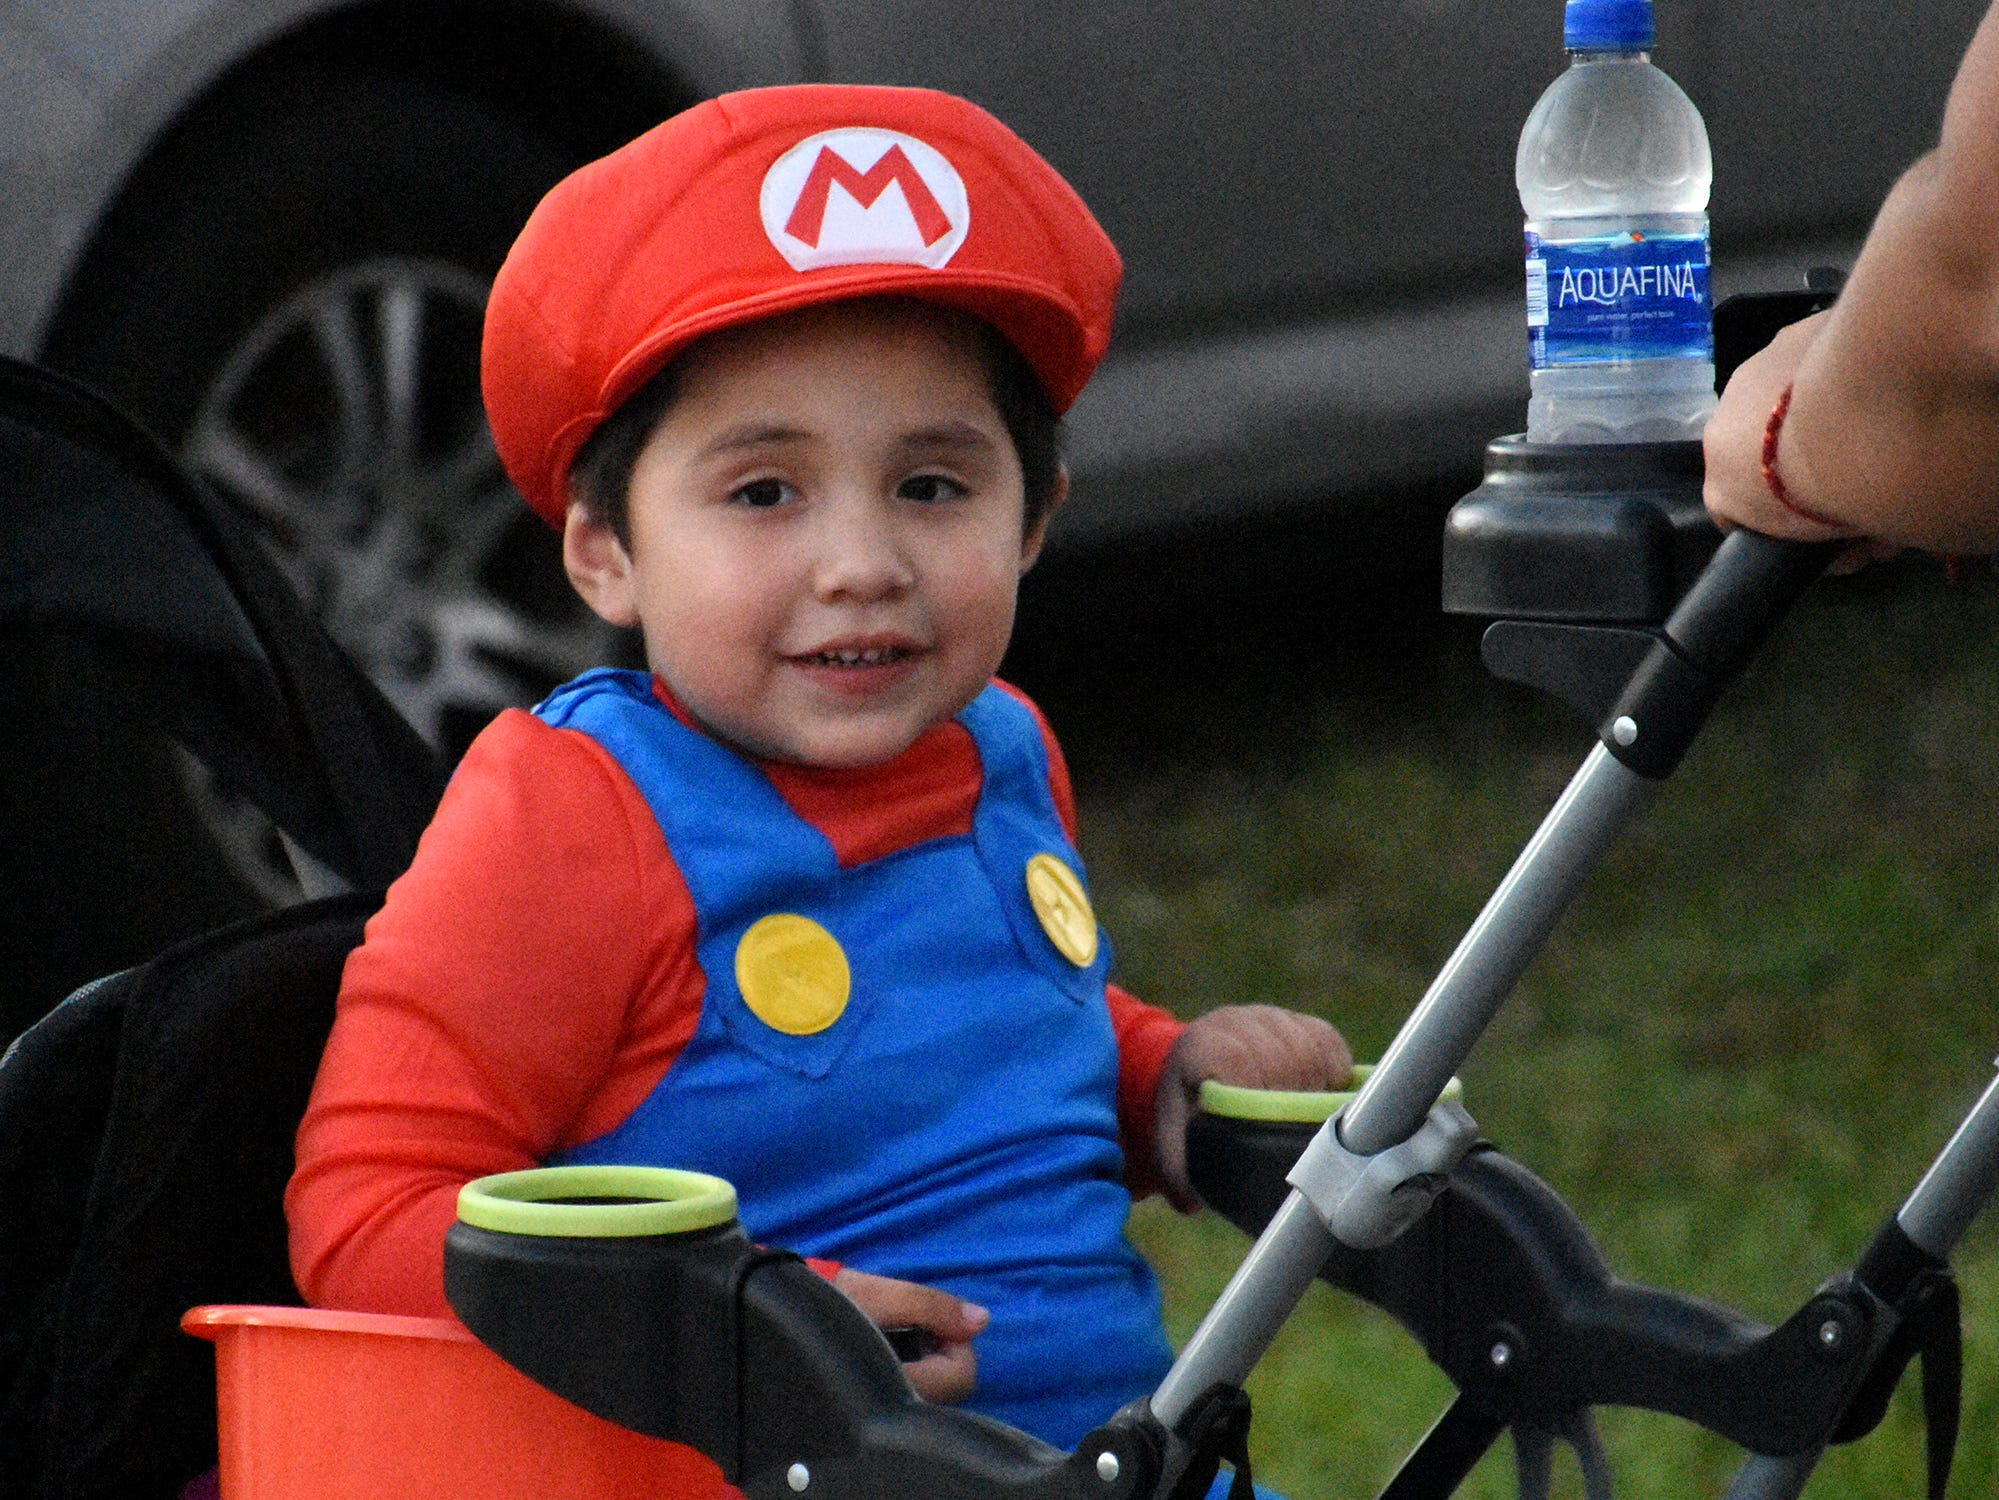 Matthew Sanchez, 5, as Mario. Wednesday evening, in a decades-old tradition, the streets around Tommie Barfield Elementary turned into a trick or treatin' block party.